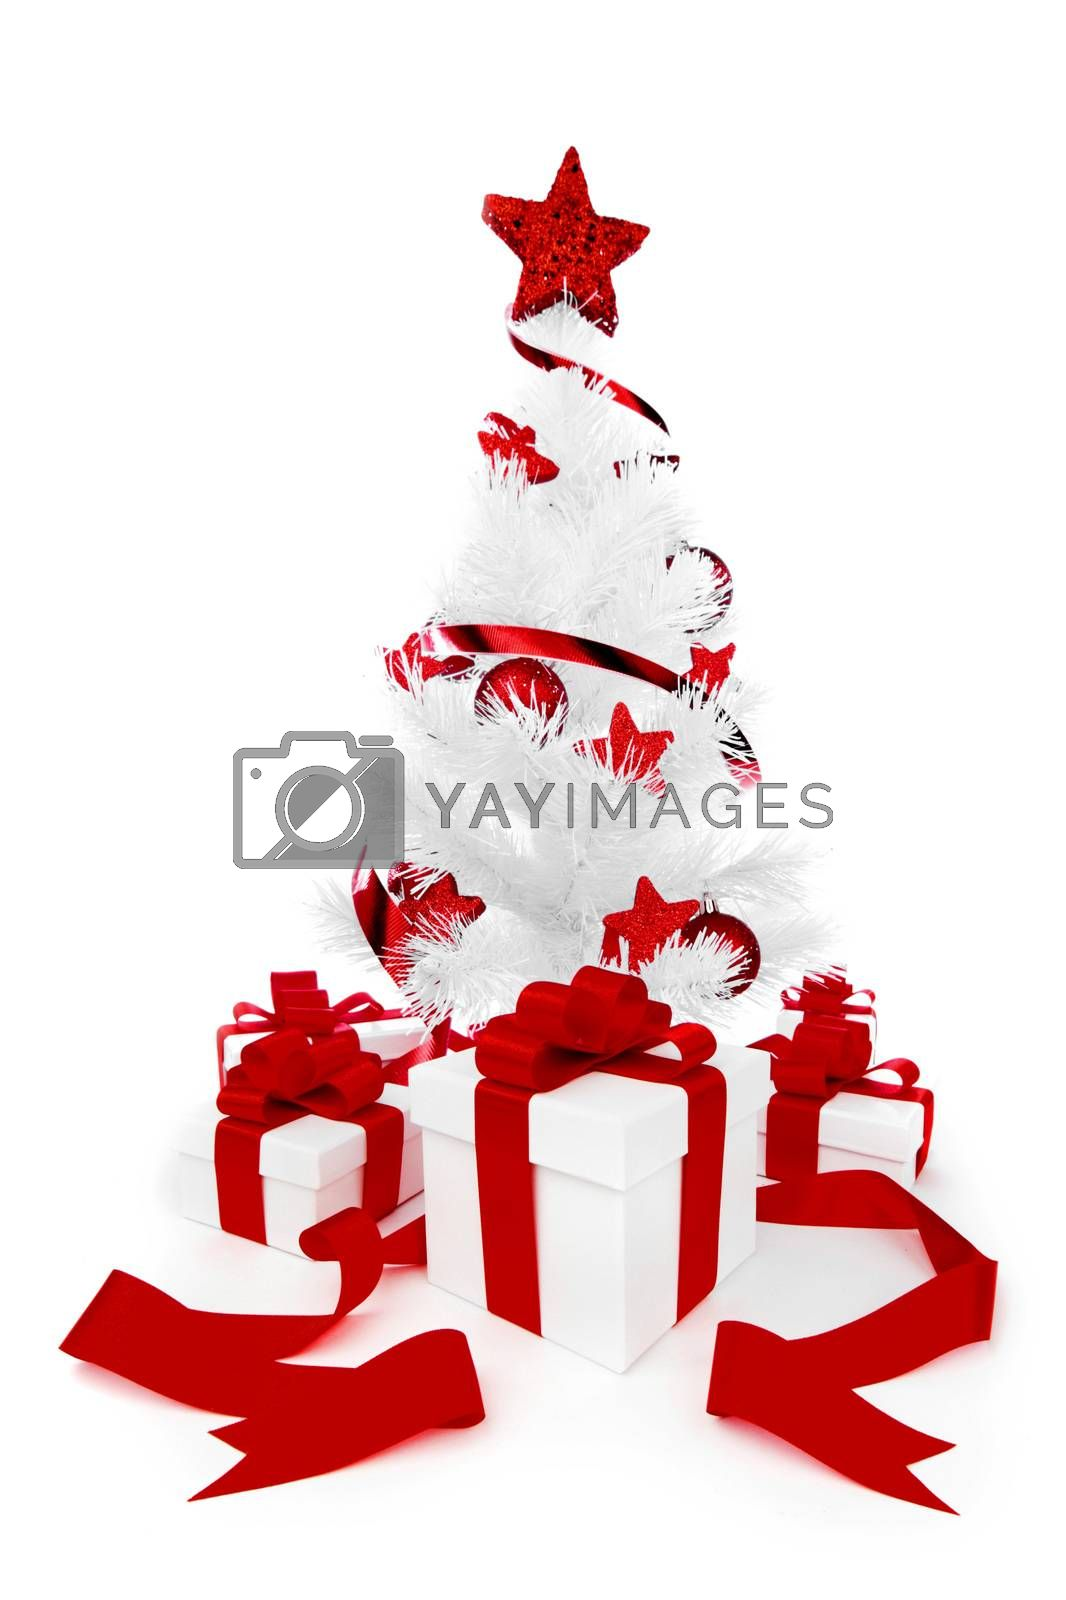 White christmas tree with red decorations and presents isolated on white background